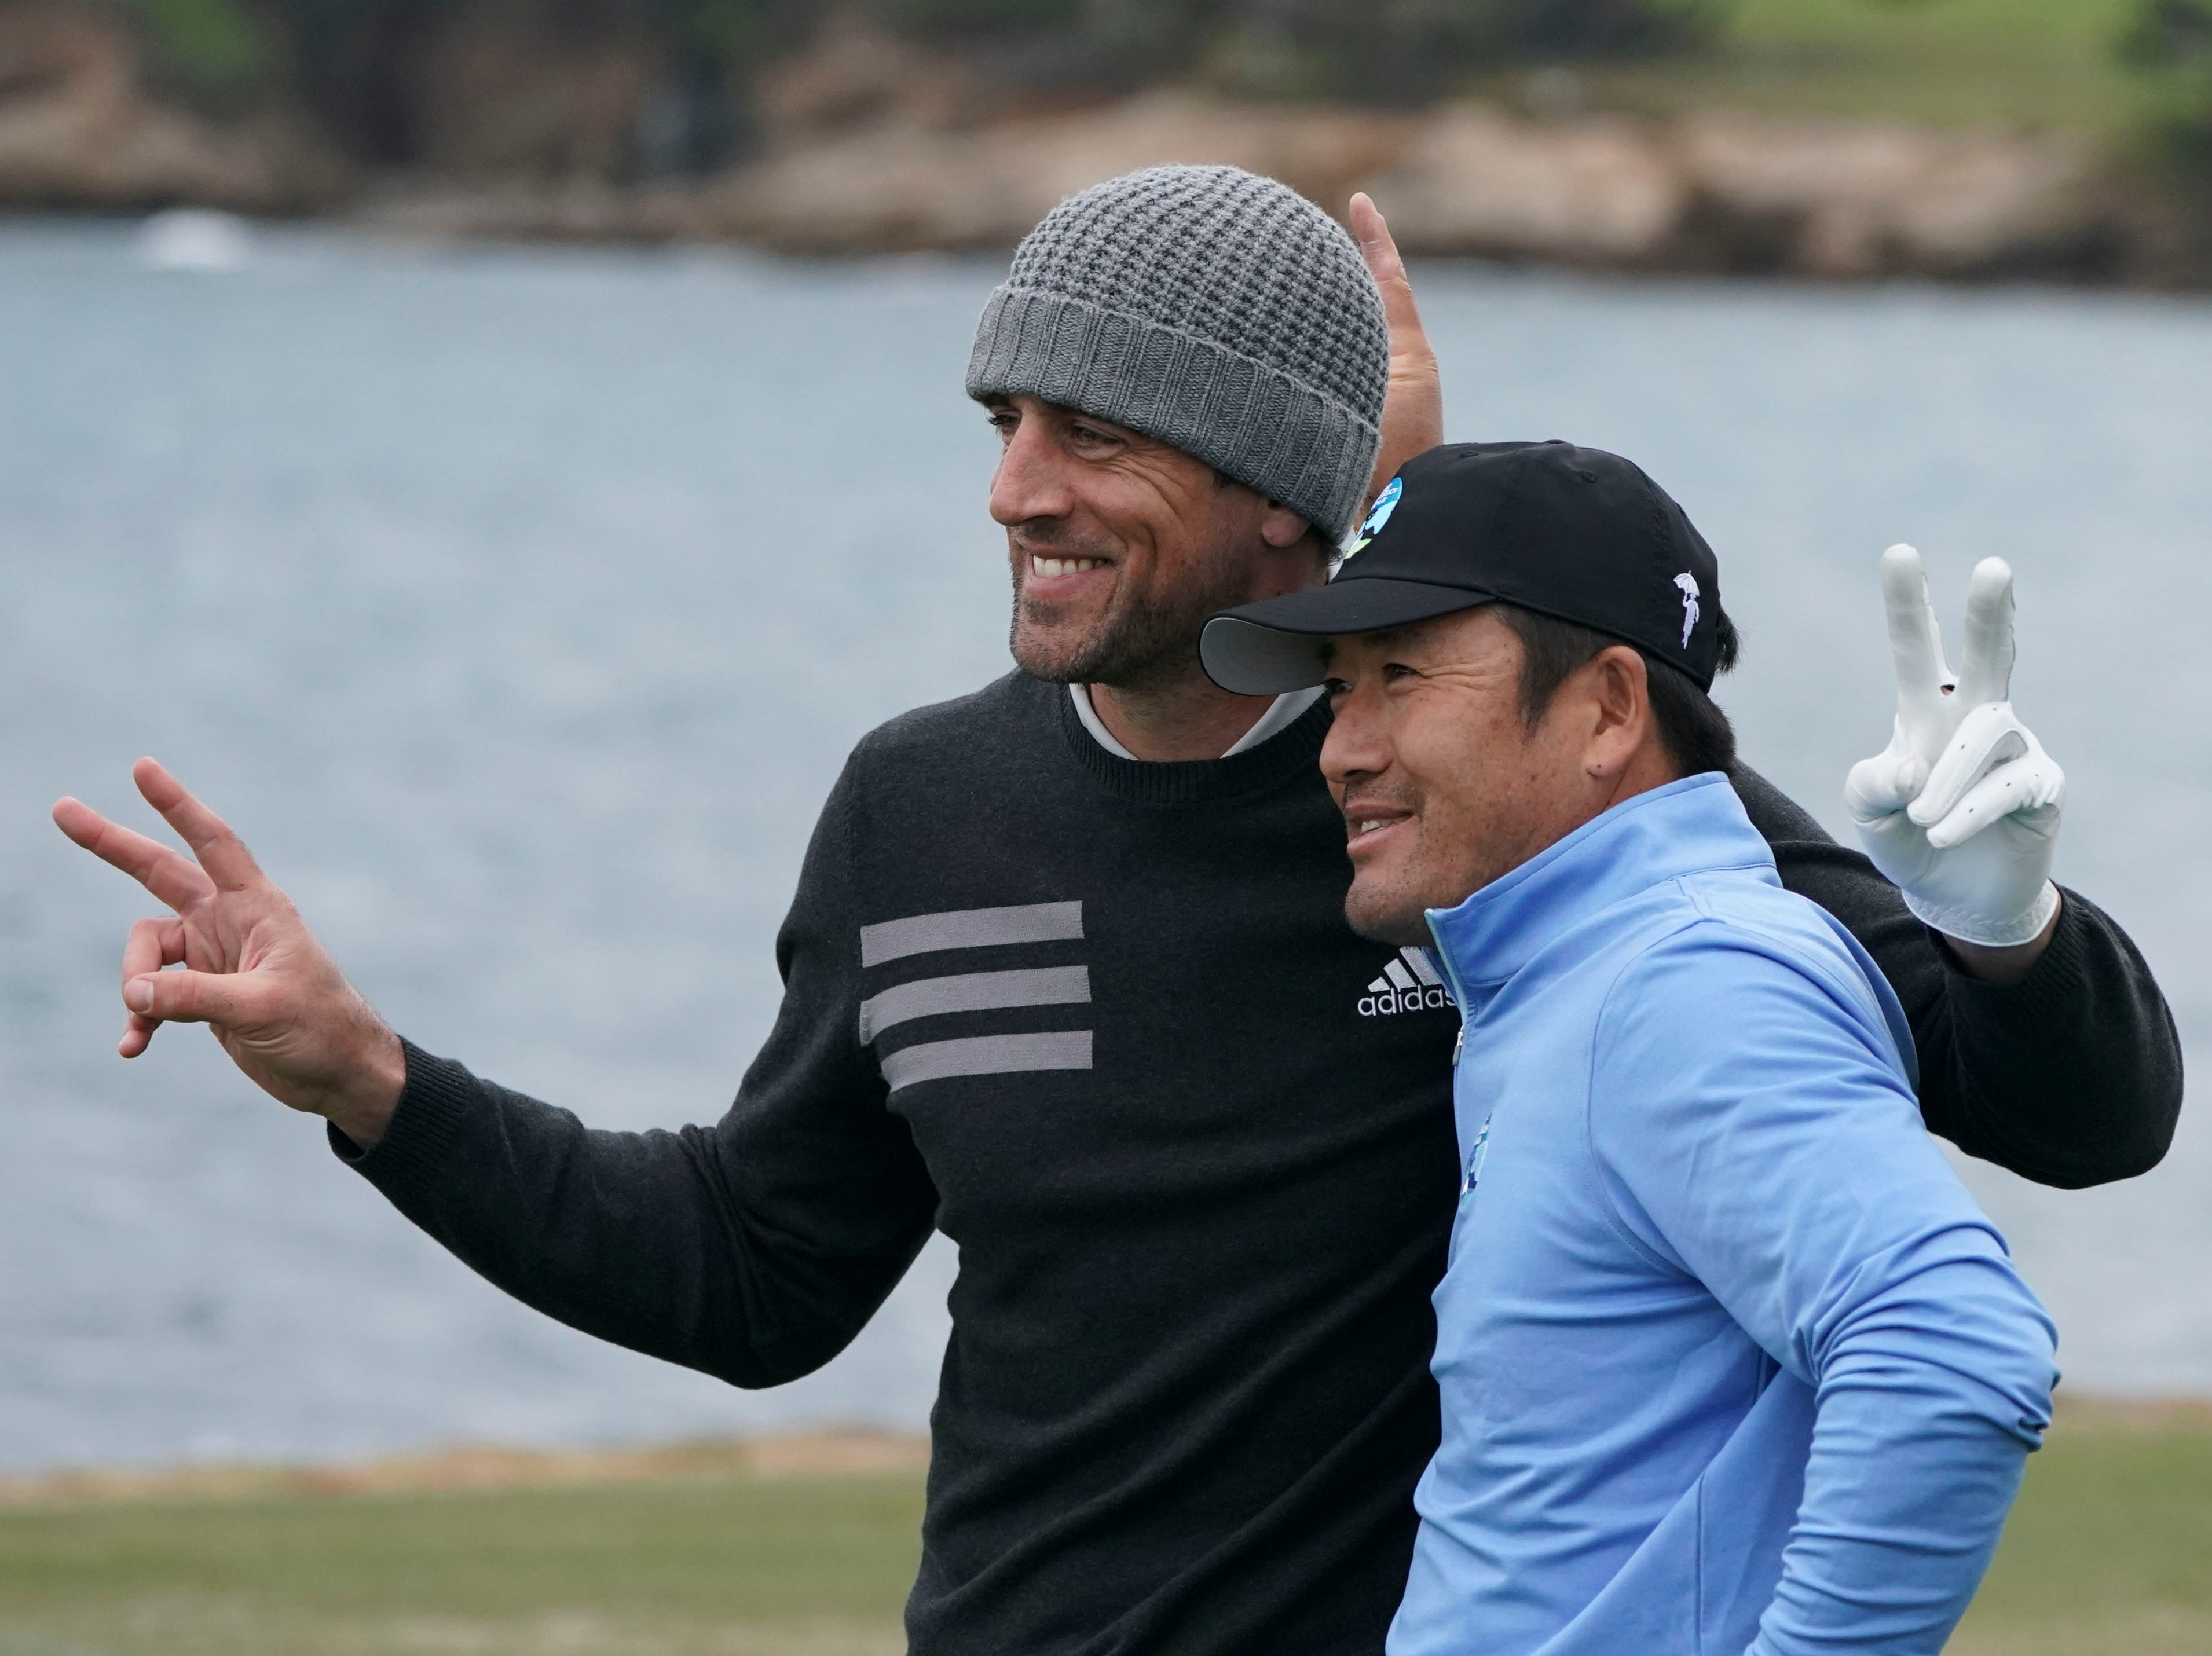 Green Bay Packers Aaron Rodgers, left,  and golfer Ho-sung Choi pose for a photo on the 18th tee box during the third round.